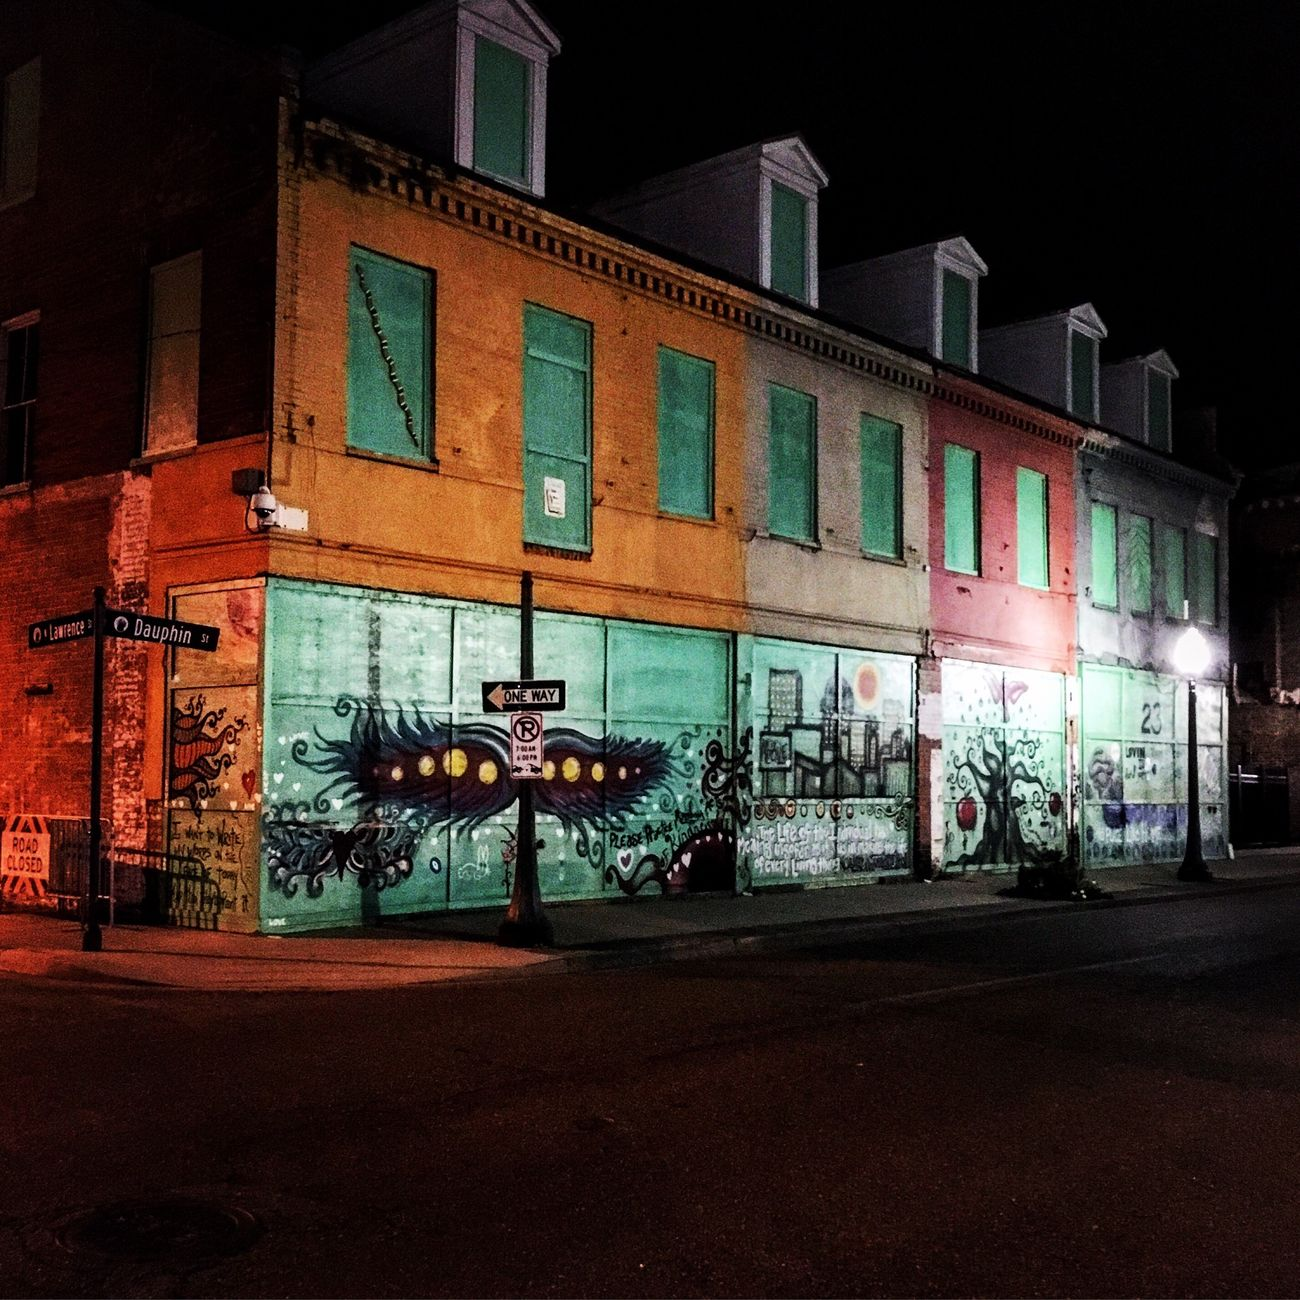 Dauphin Street - Mobile, AL - 01/2016 Graffiti Graffiti Art Mobile Alabama  Dauphin Street Night Walk Street Light